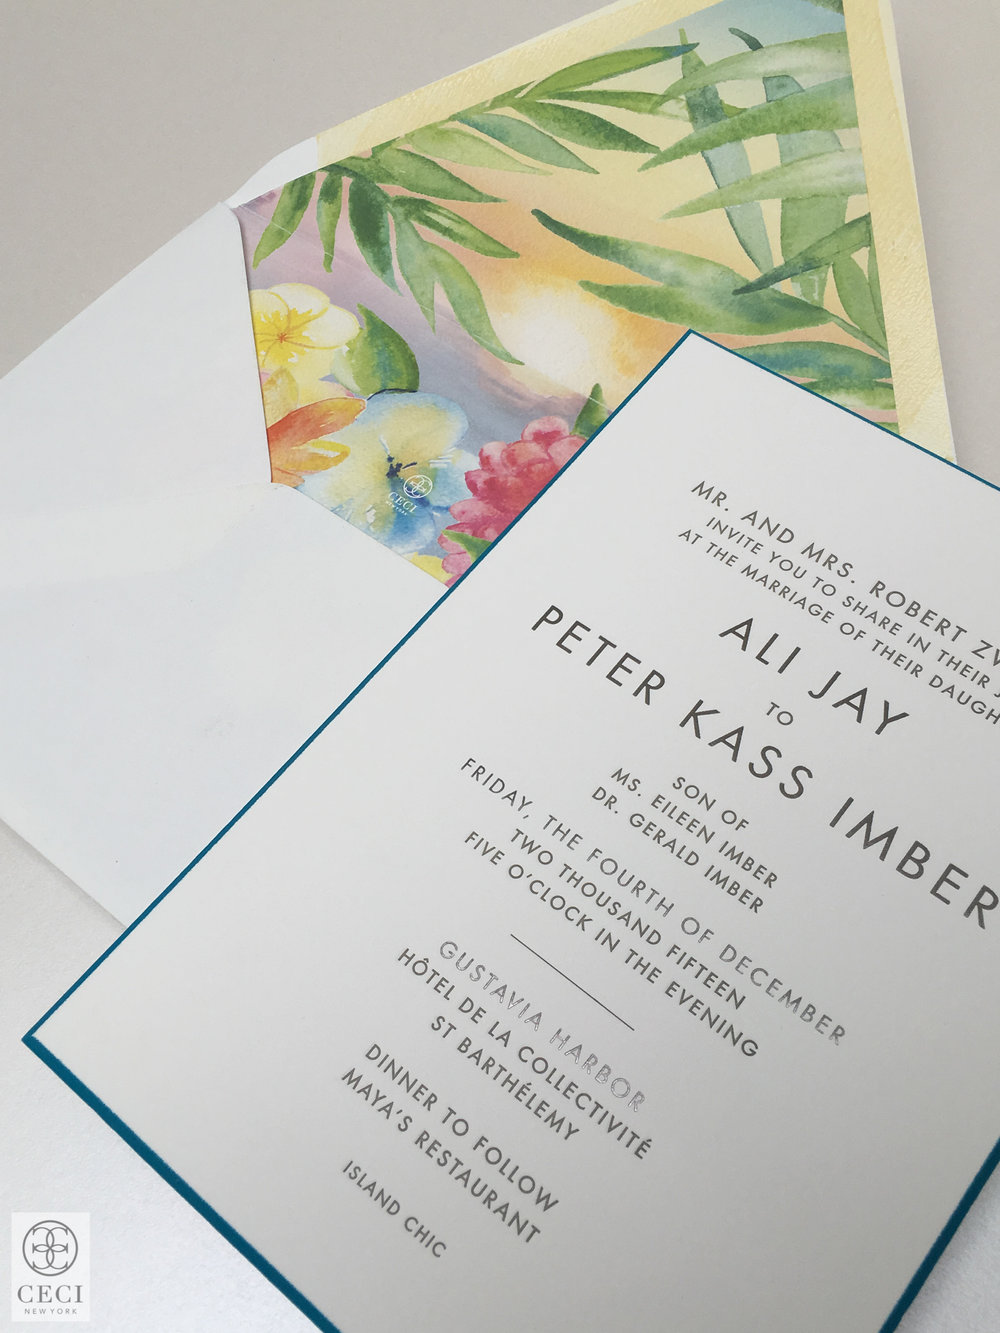 Ceci_New_York_Ceci_Style_Ceci_Johnson_Luxury_Lifestyle_Destination_St._Barts_Wedding_Letterpress_Watercolor_Floral_Hand_Painted_Inspiration_Design_Custom_Couture_Personalized_Invitations_ 3.jpg